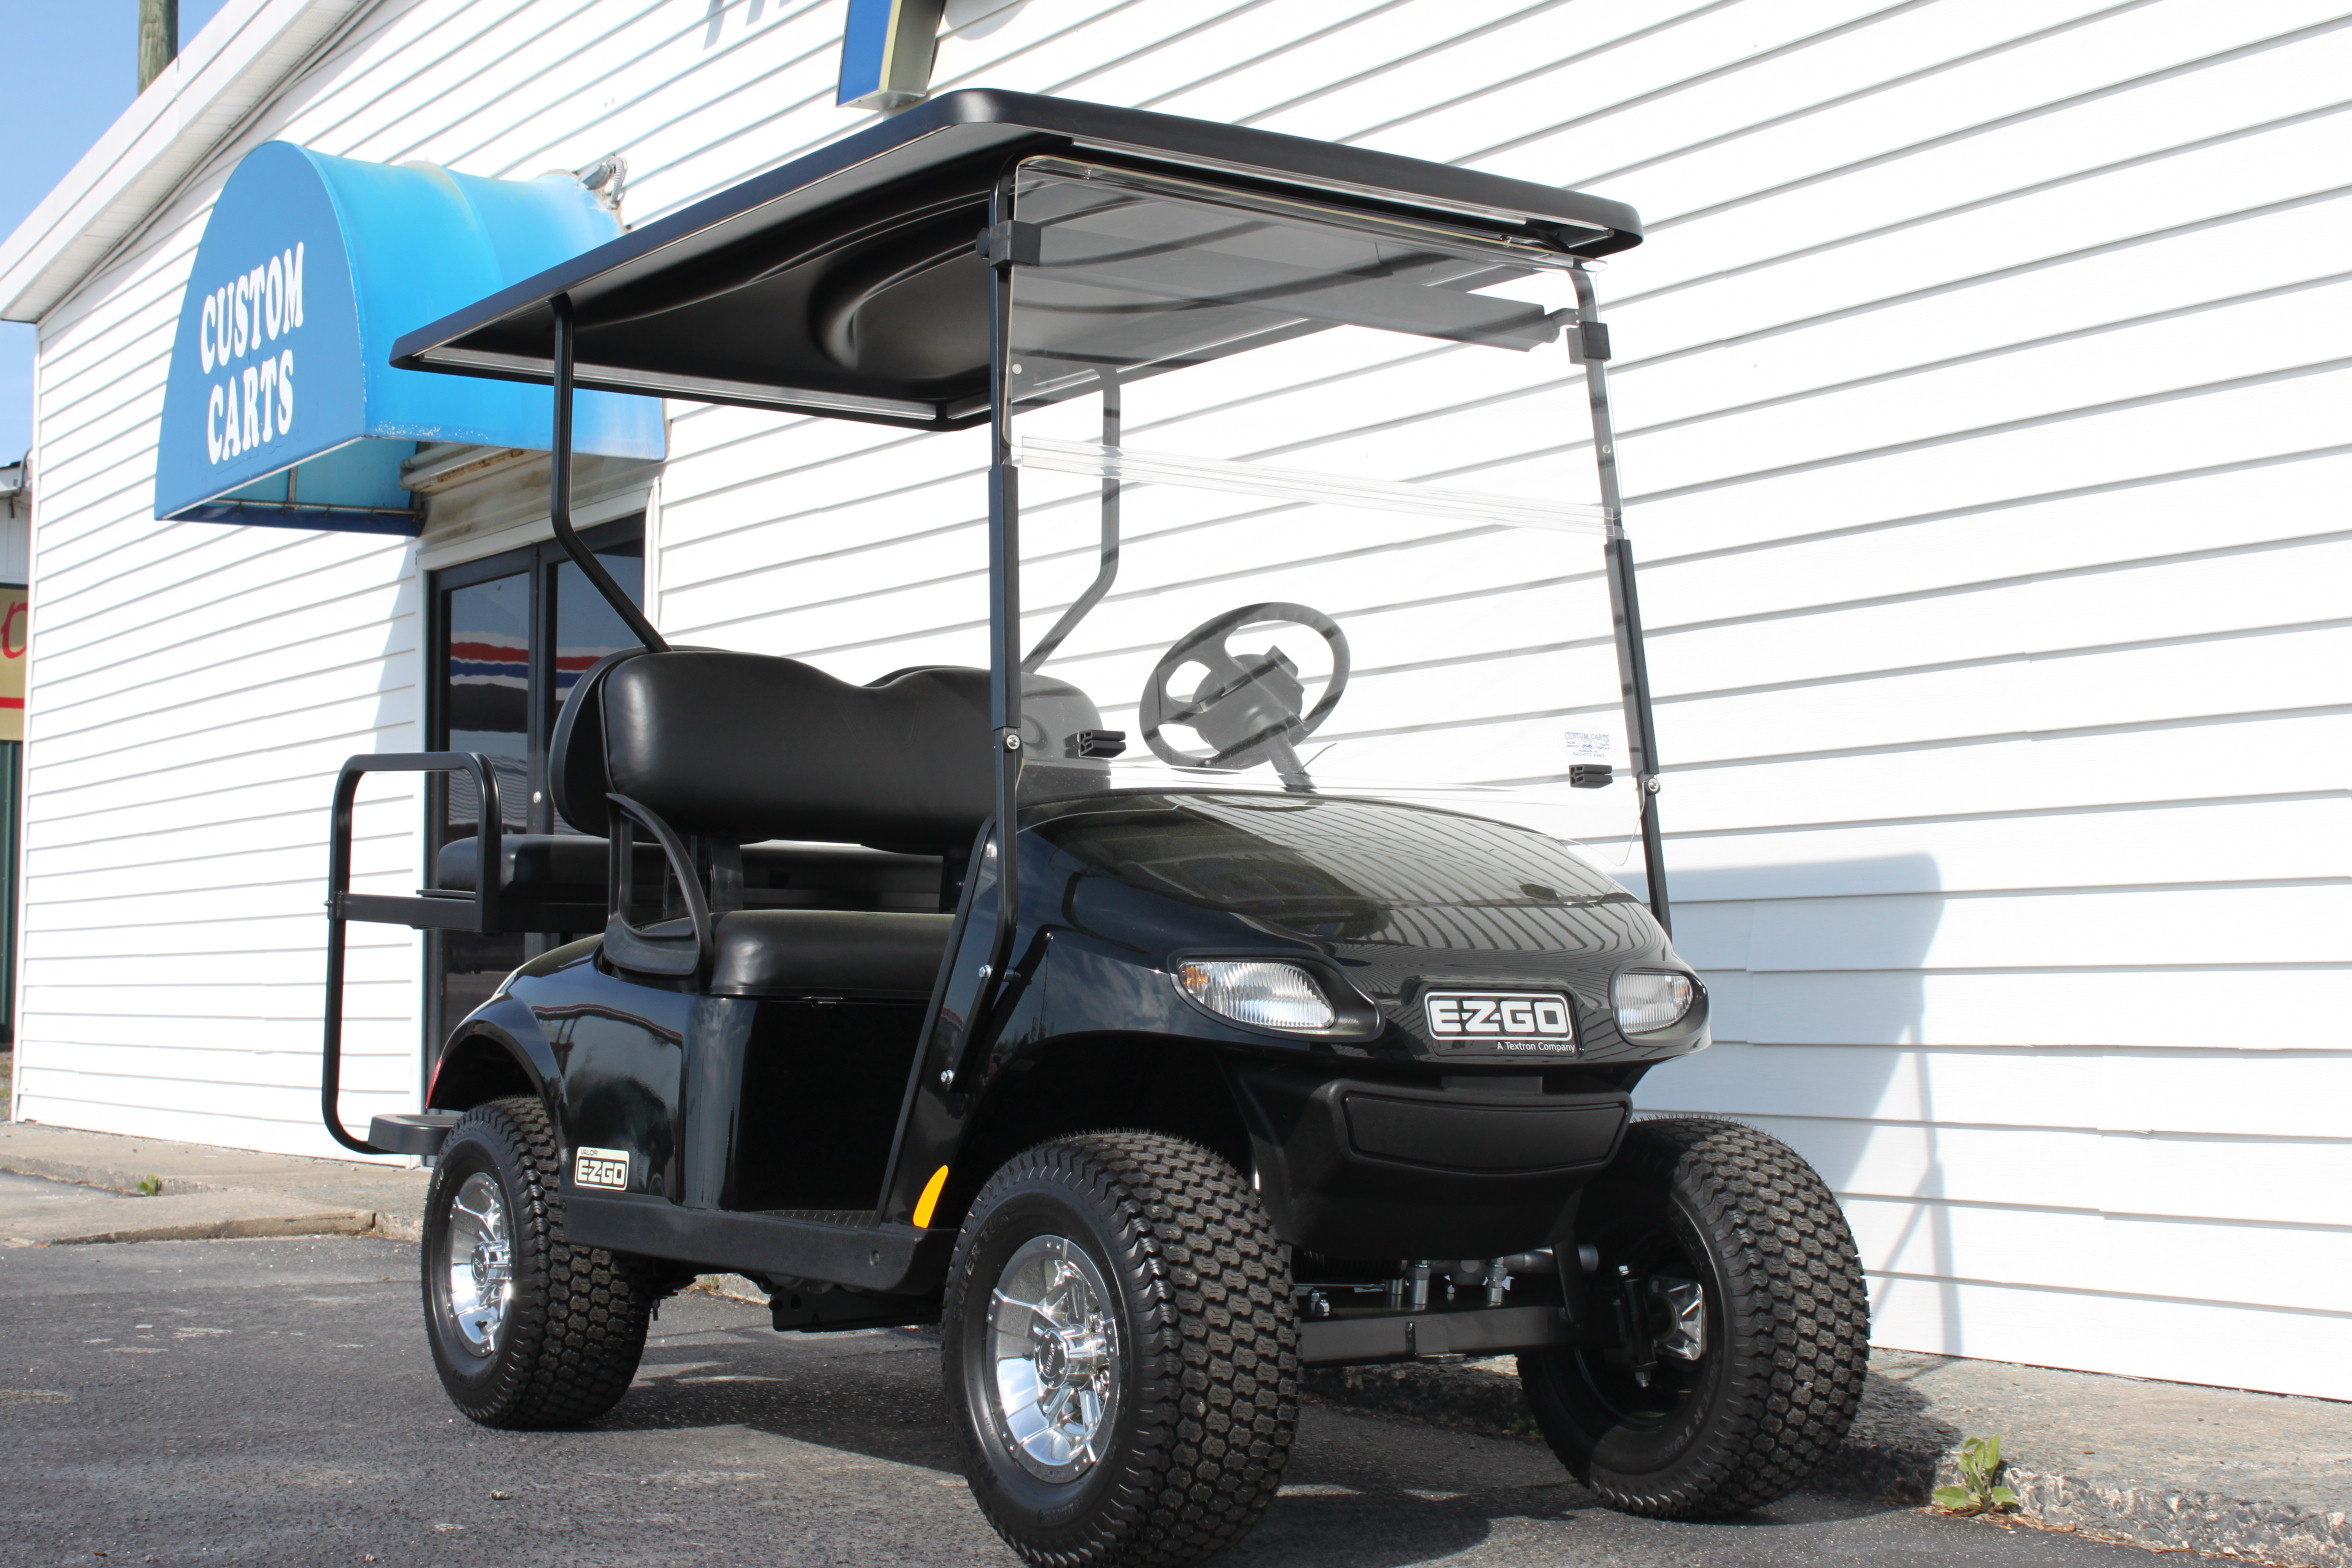 STOCK# BLKVALOR, 2019 E-Z-GO VALOR GAS GOLF CART